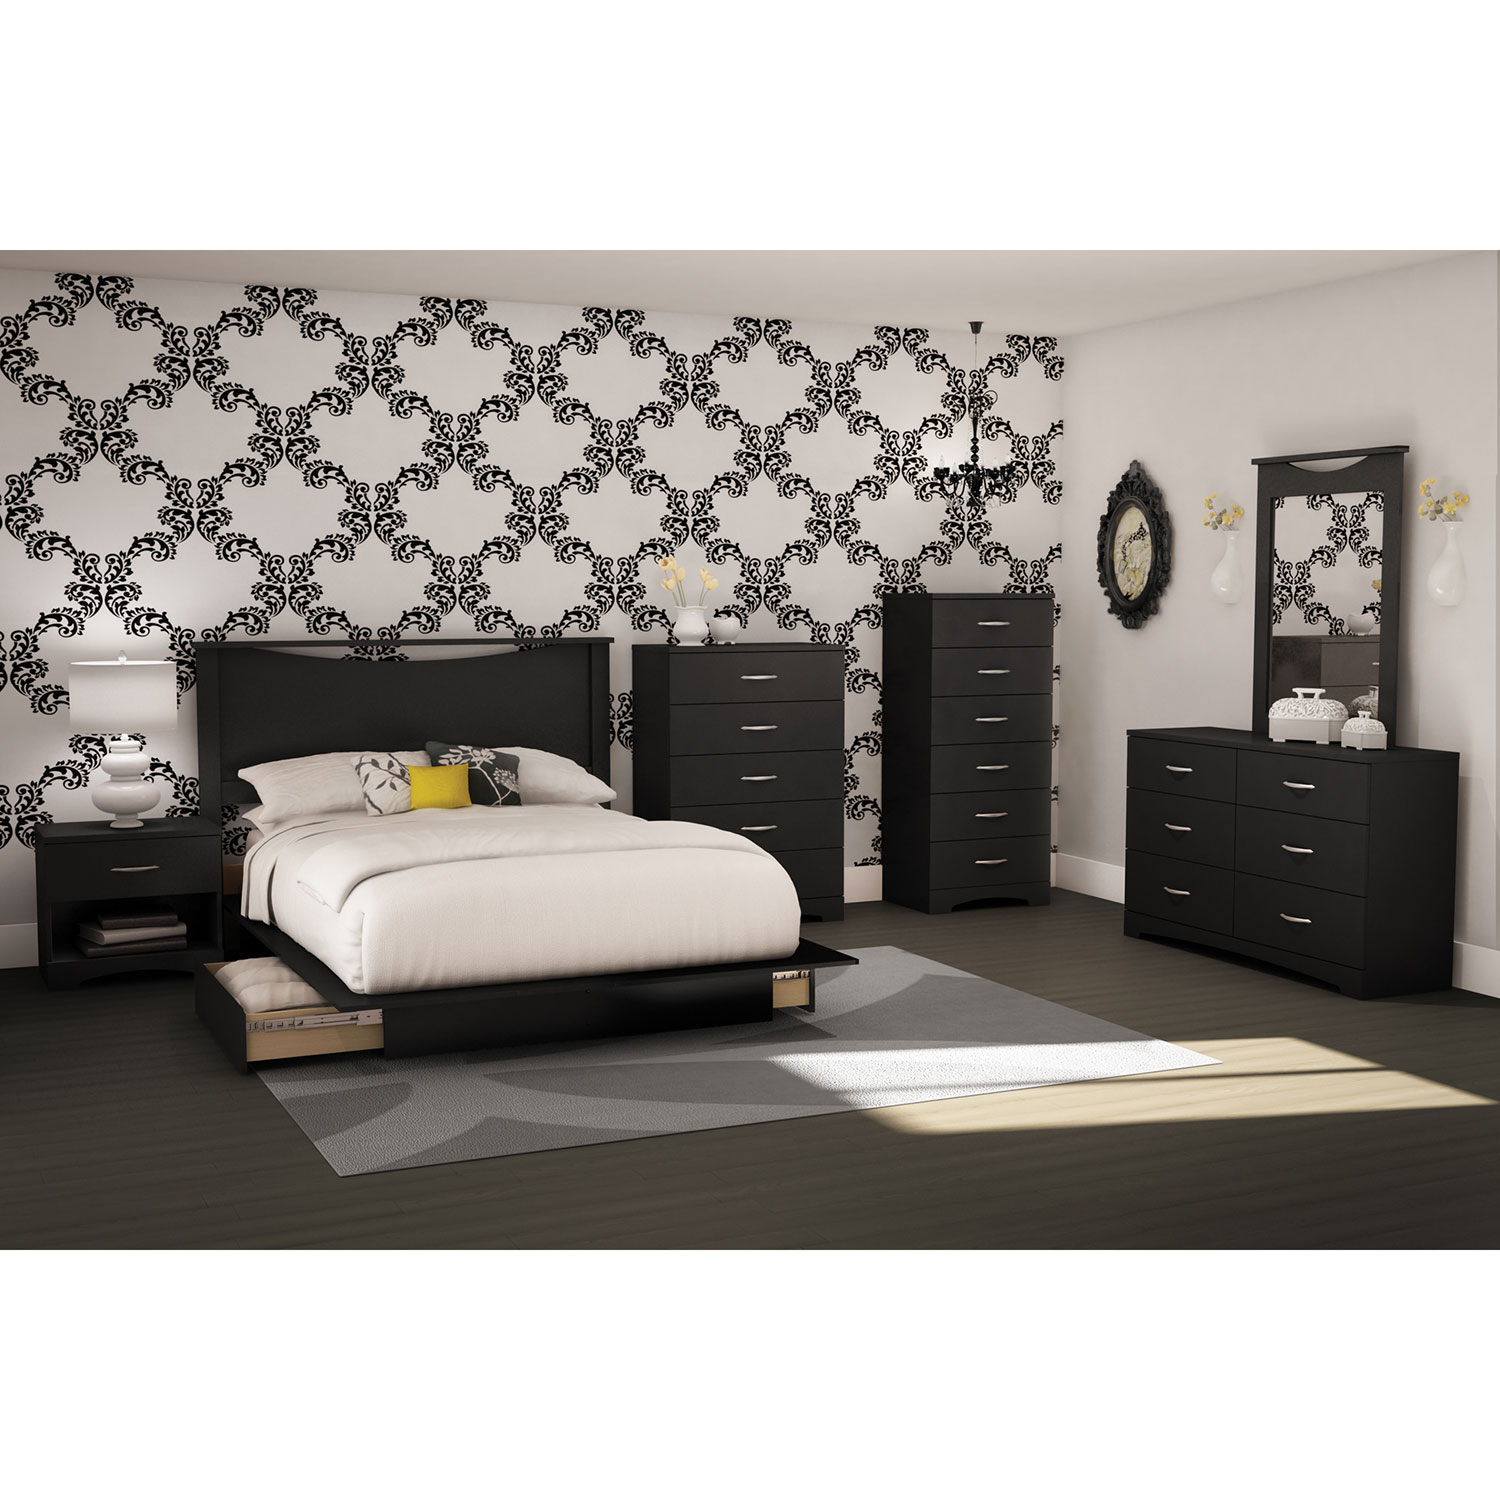 step one contemporary storage bed queen black beds bed frames best buy canada - Queen Black Bed Frame